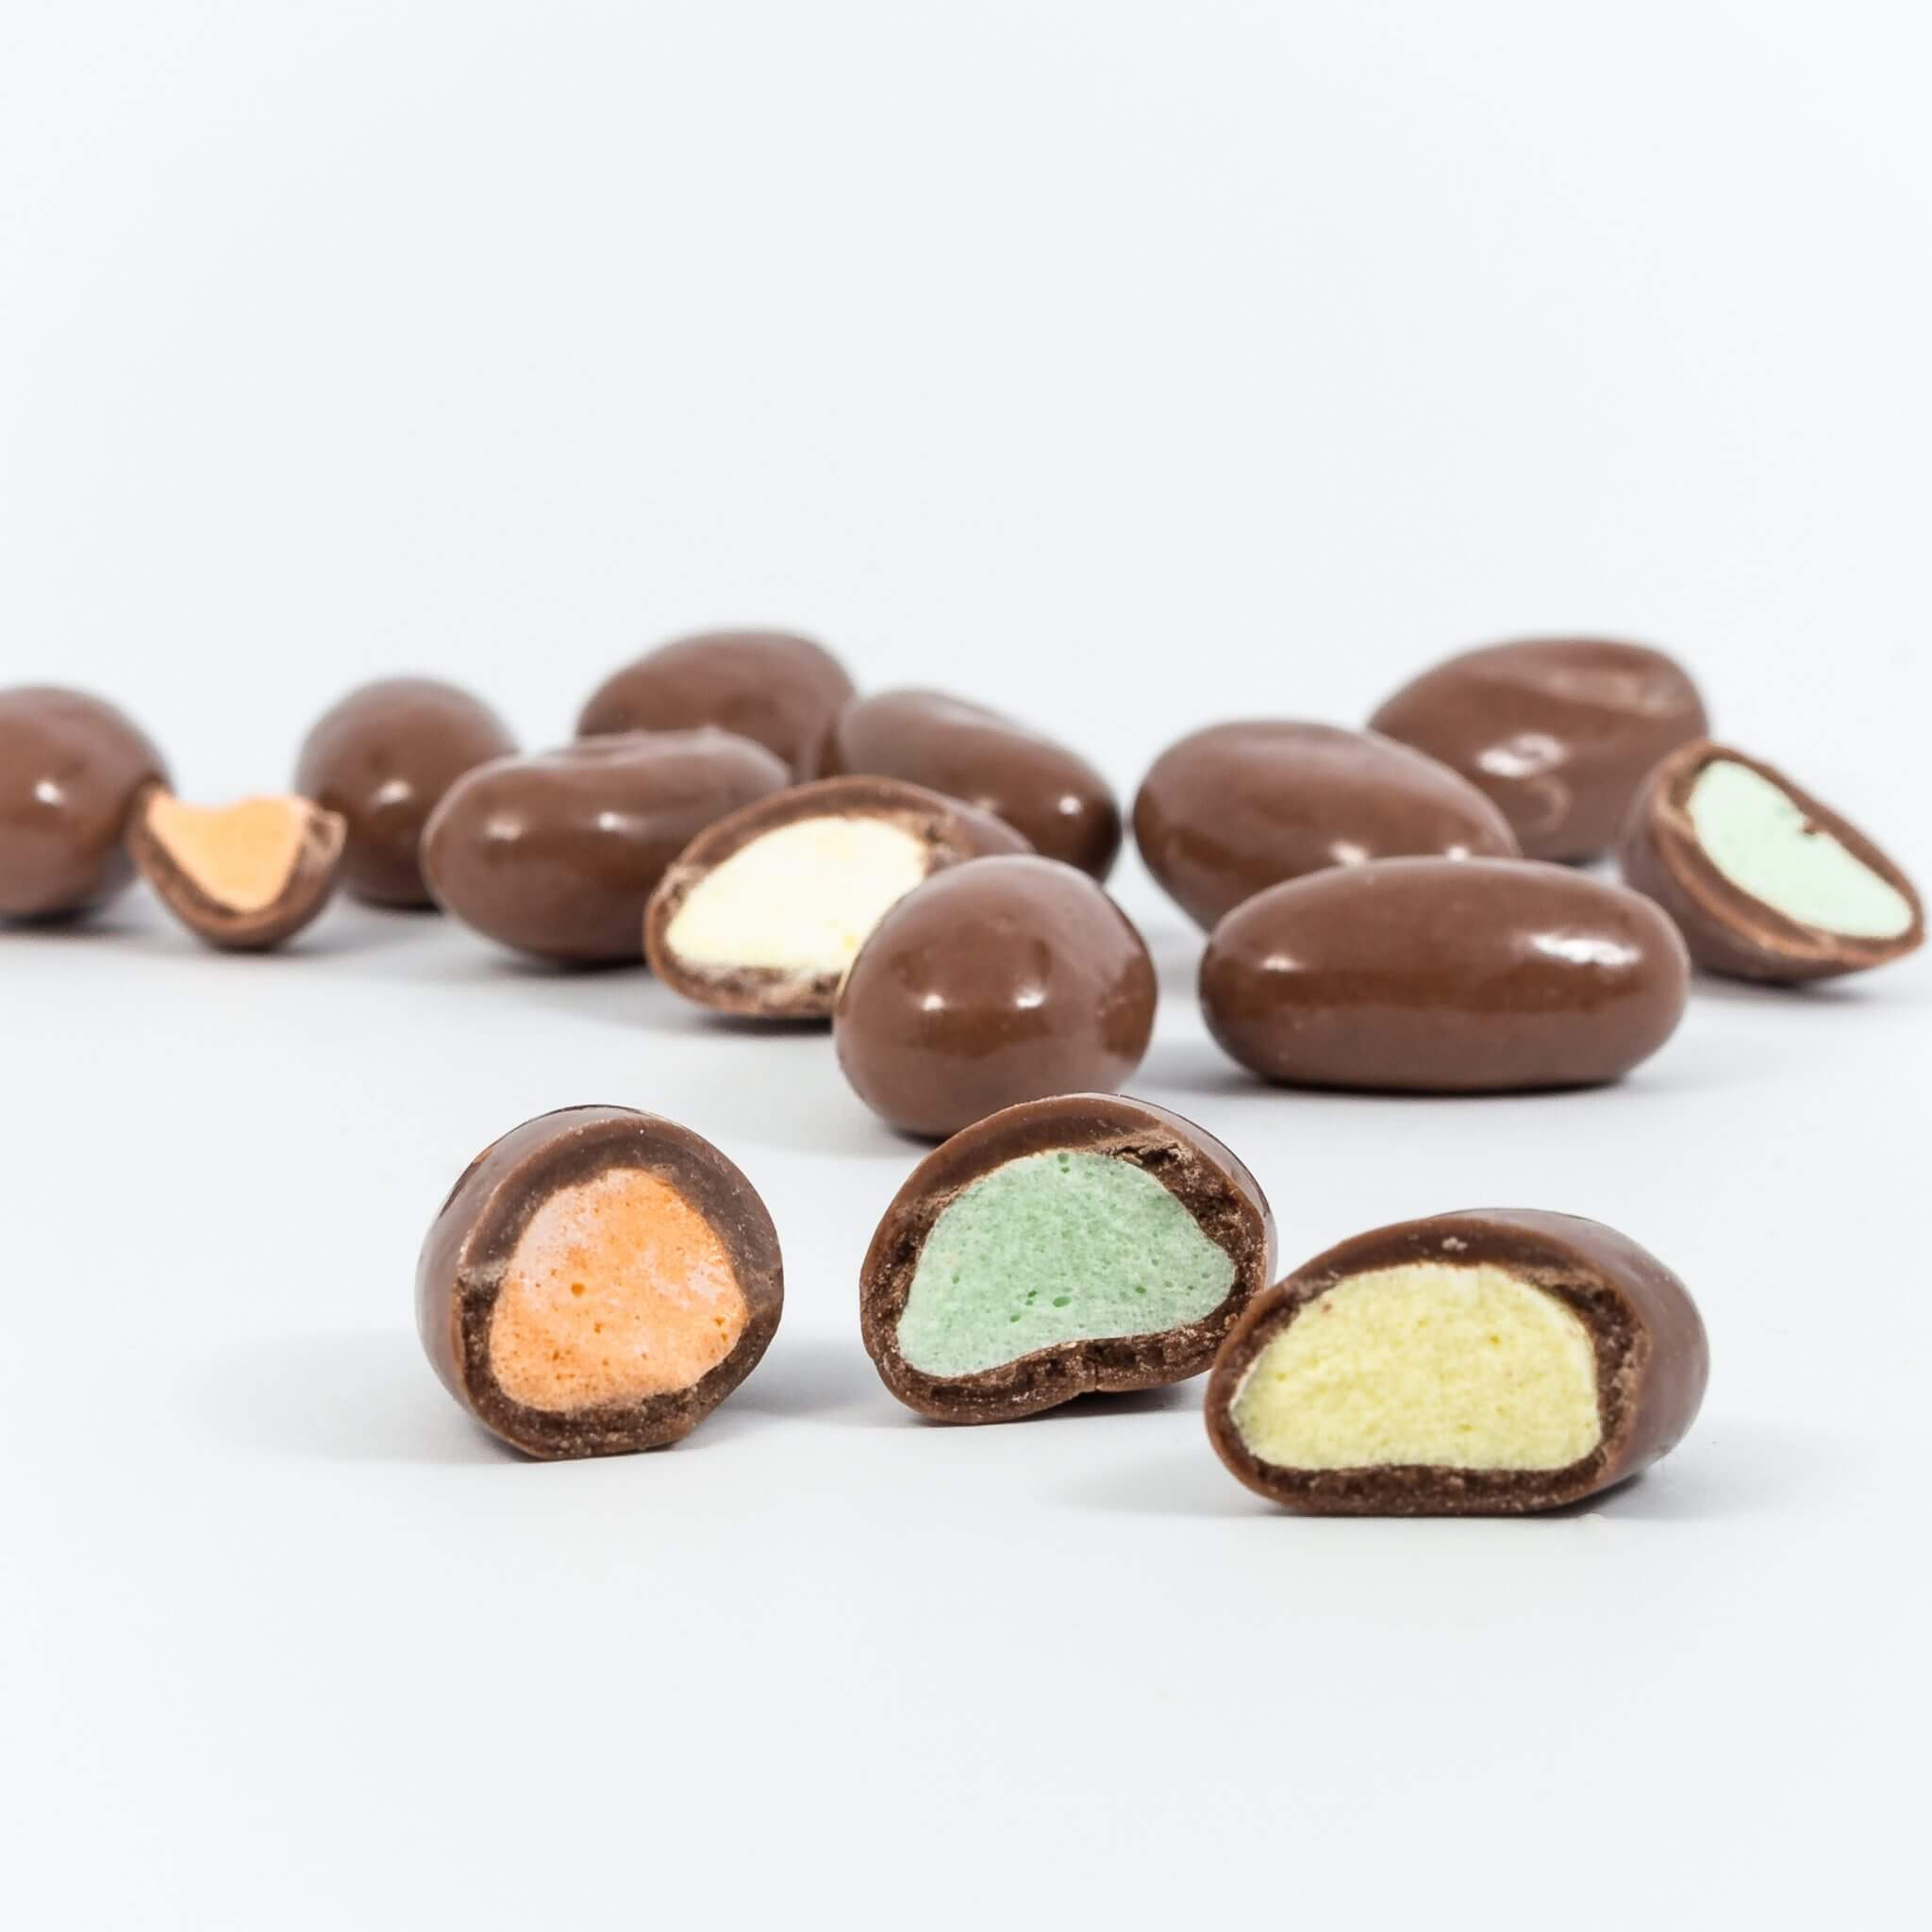 Candy Honeycomb Covered Chocolate Australian